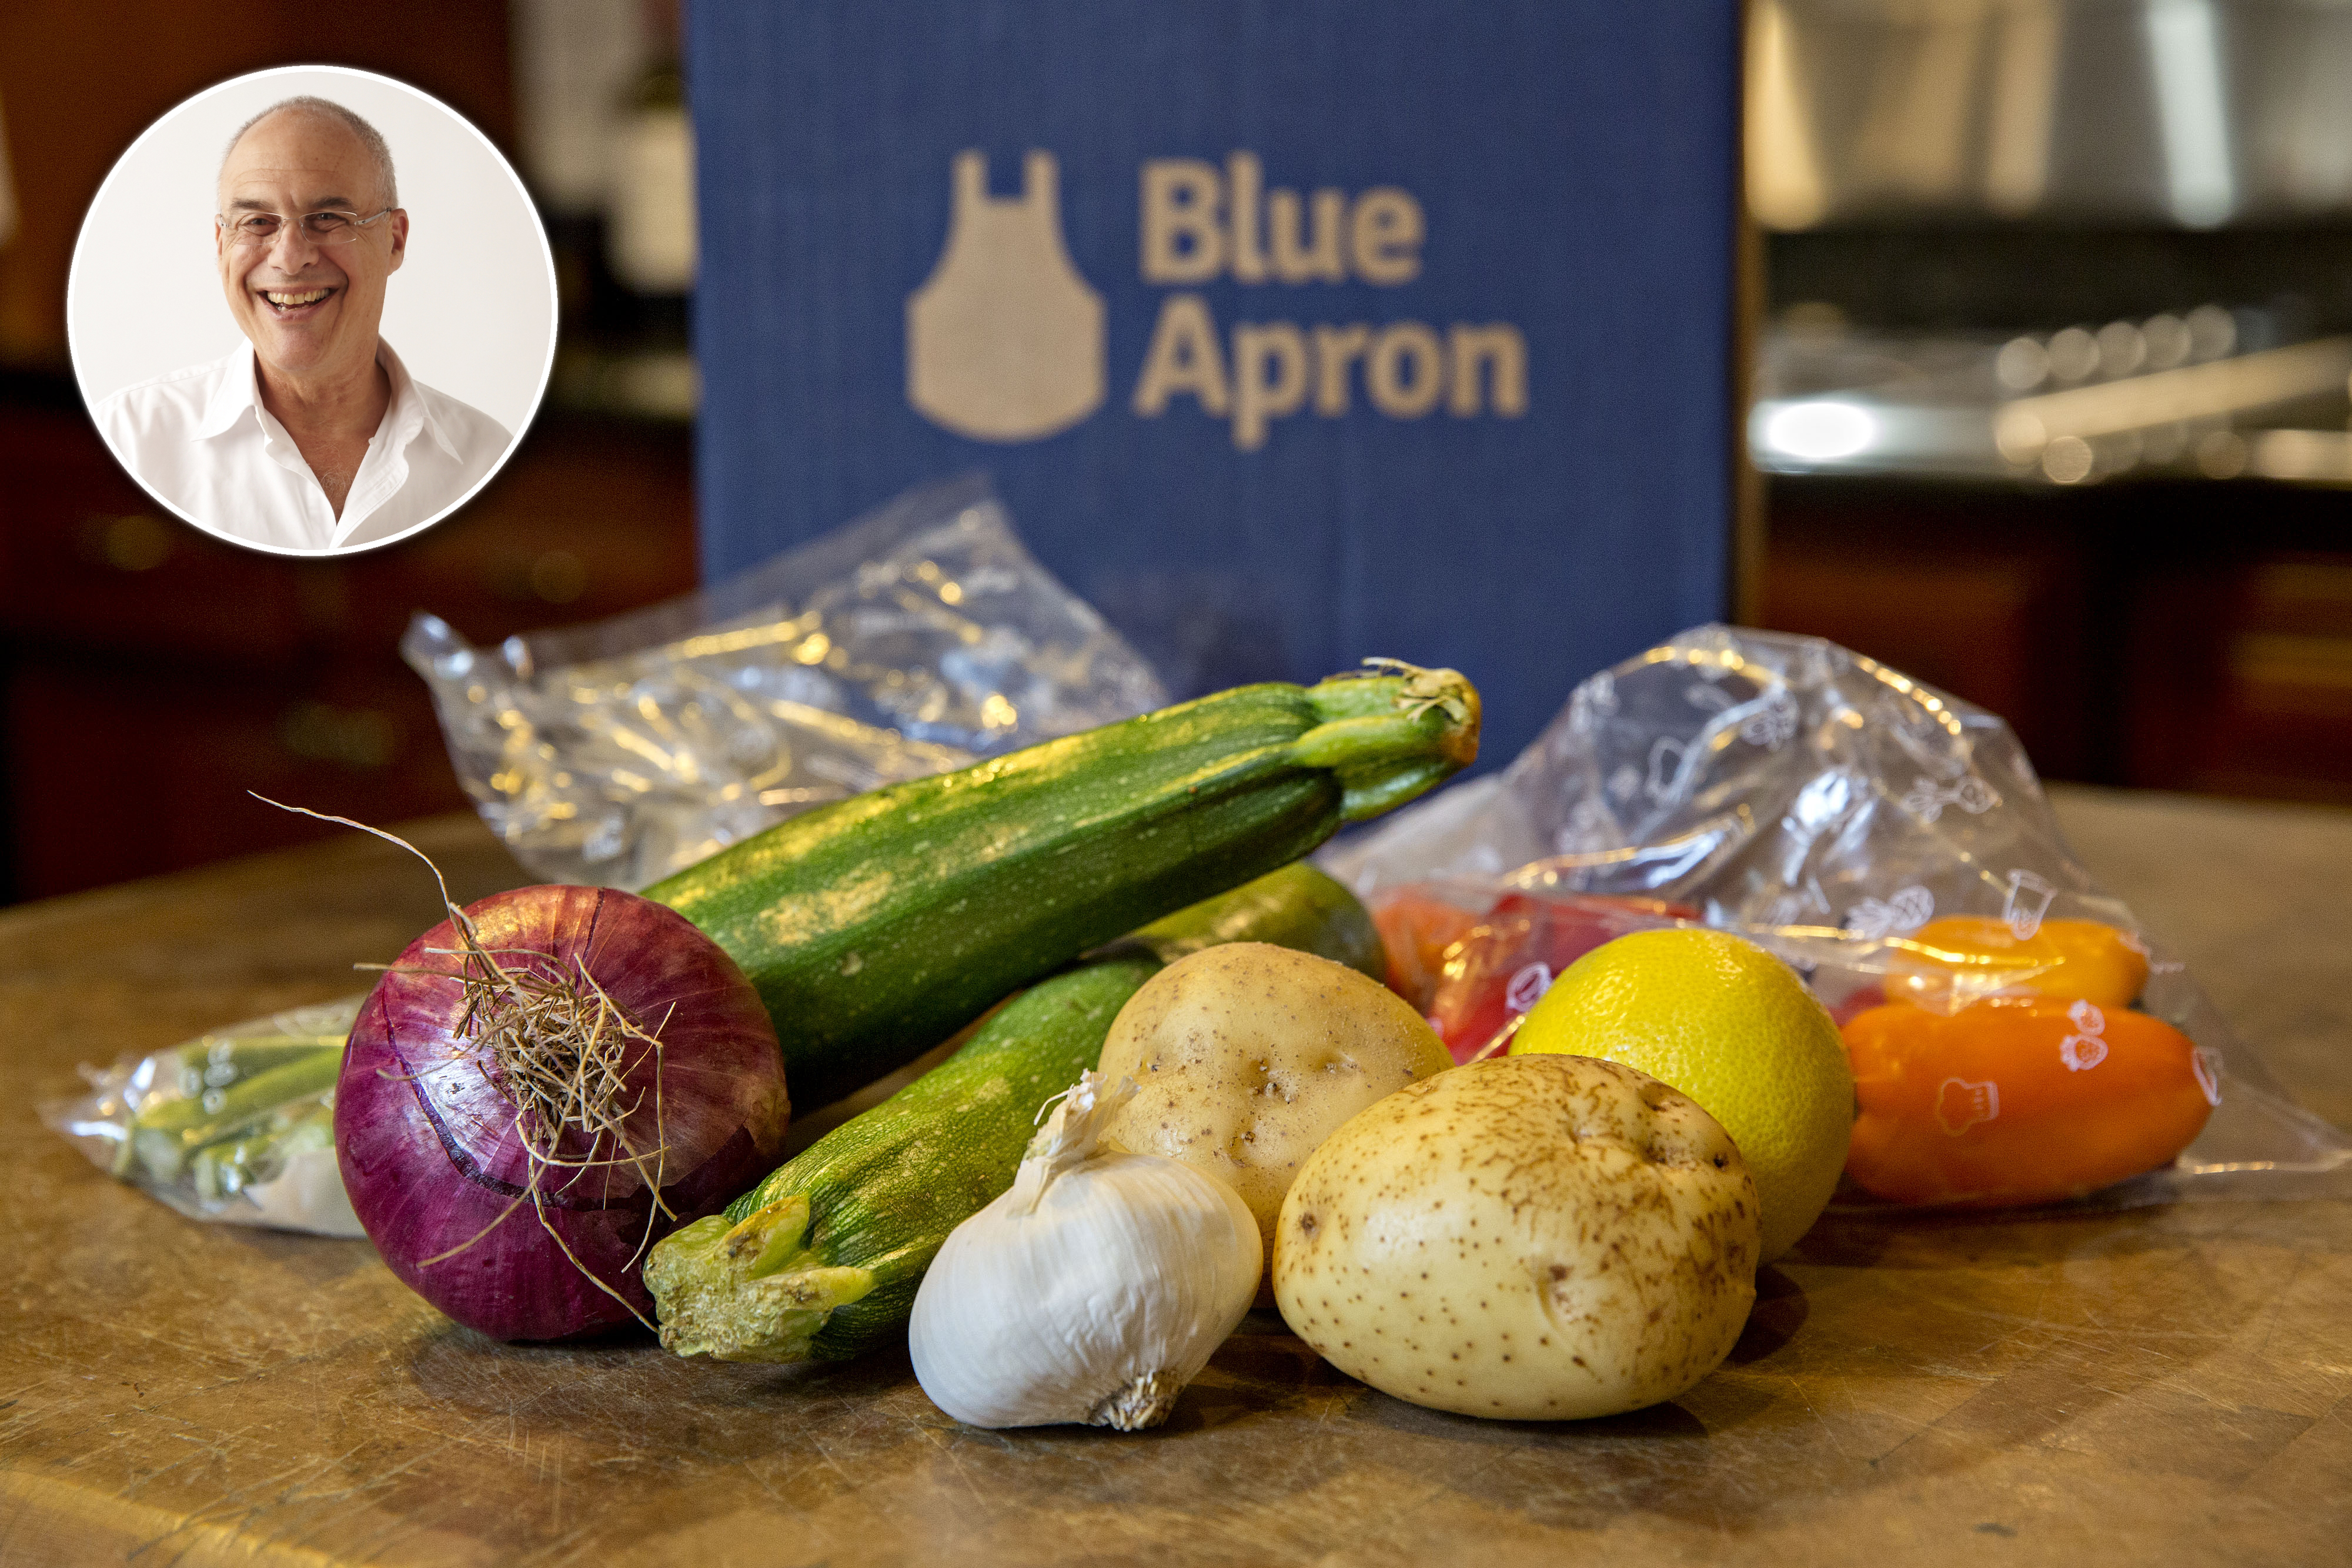 Vegetables from a Blue Apron Holdings Inc. meal-kit delivery are arranged for a photograph in Tiskilwa, Illinois, on June 14, 2017.